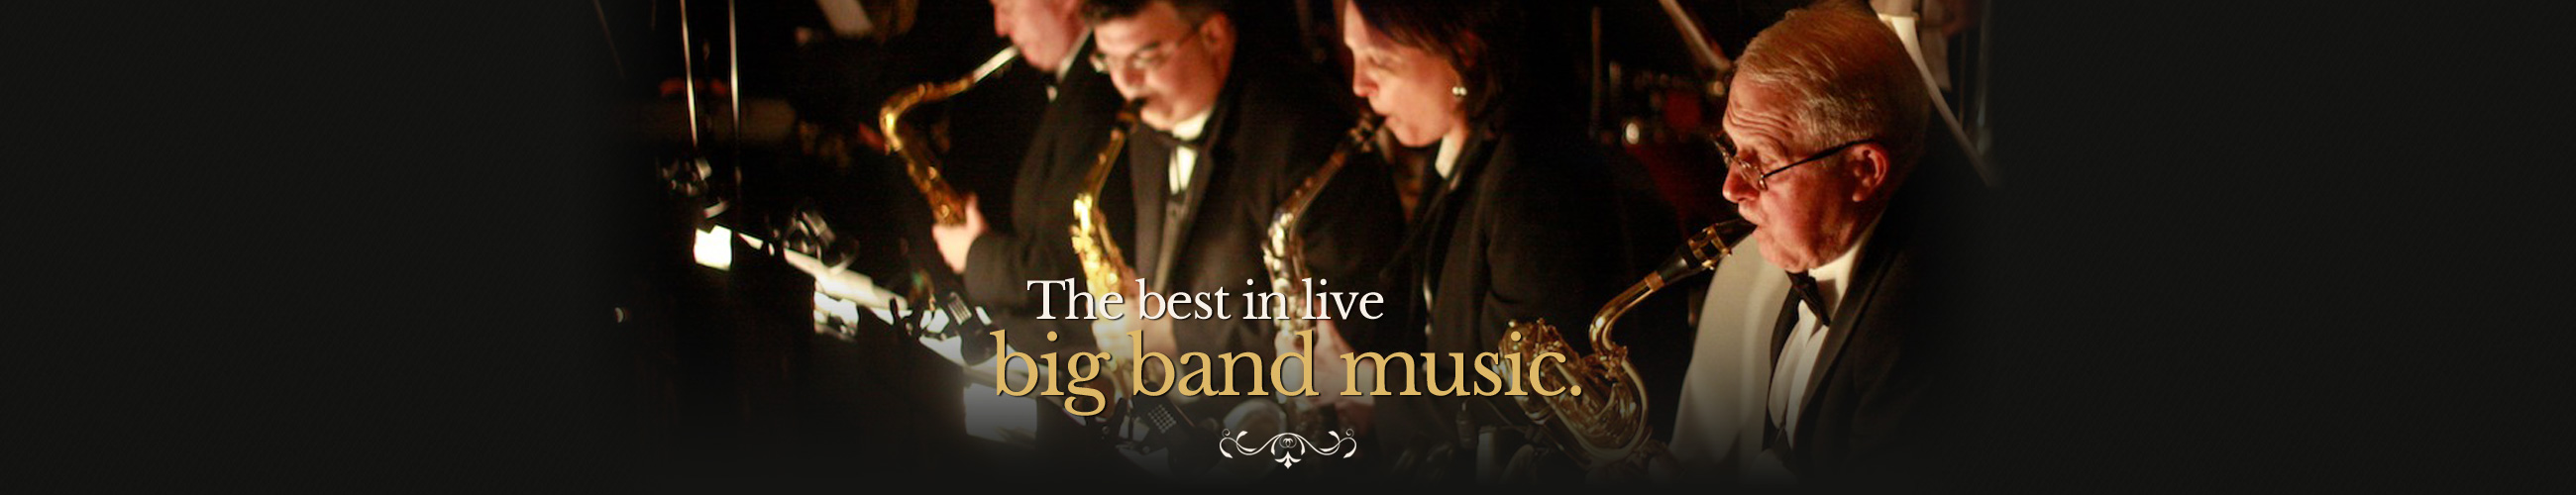 slider-best-big-band5